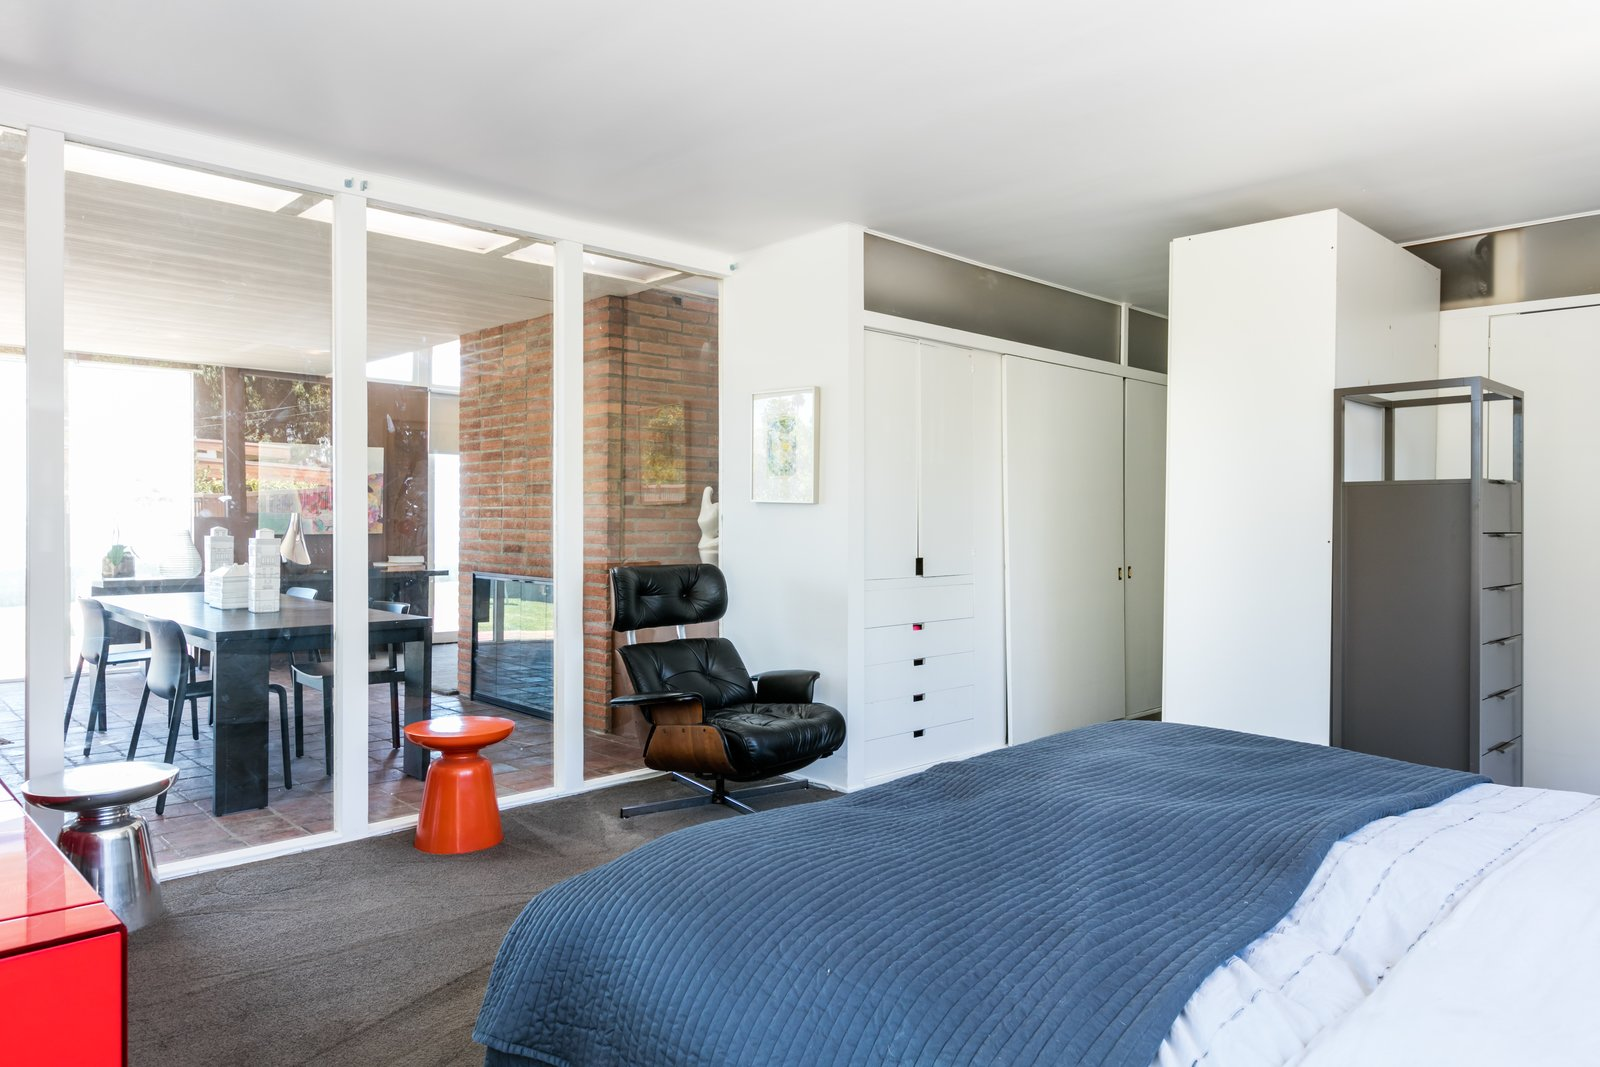 Bedroom, Carpet, Bed, Wardrobe, Storage, and Chair The highlight of this bedroom is ample built-in storage.  Best Bedroom Carpet Chair Wardrobe Bed Photos from Case Study House #18 in L.A. Hits the Market at $10M and Includes Plans From Tom Kundig